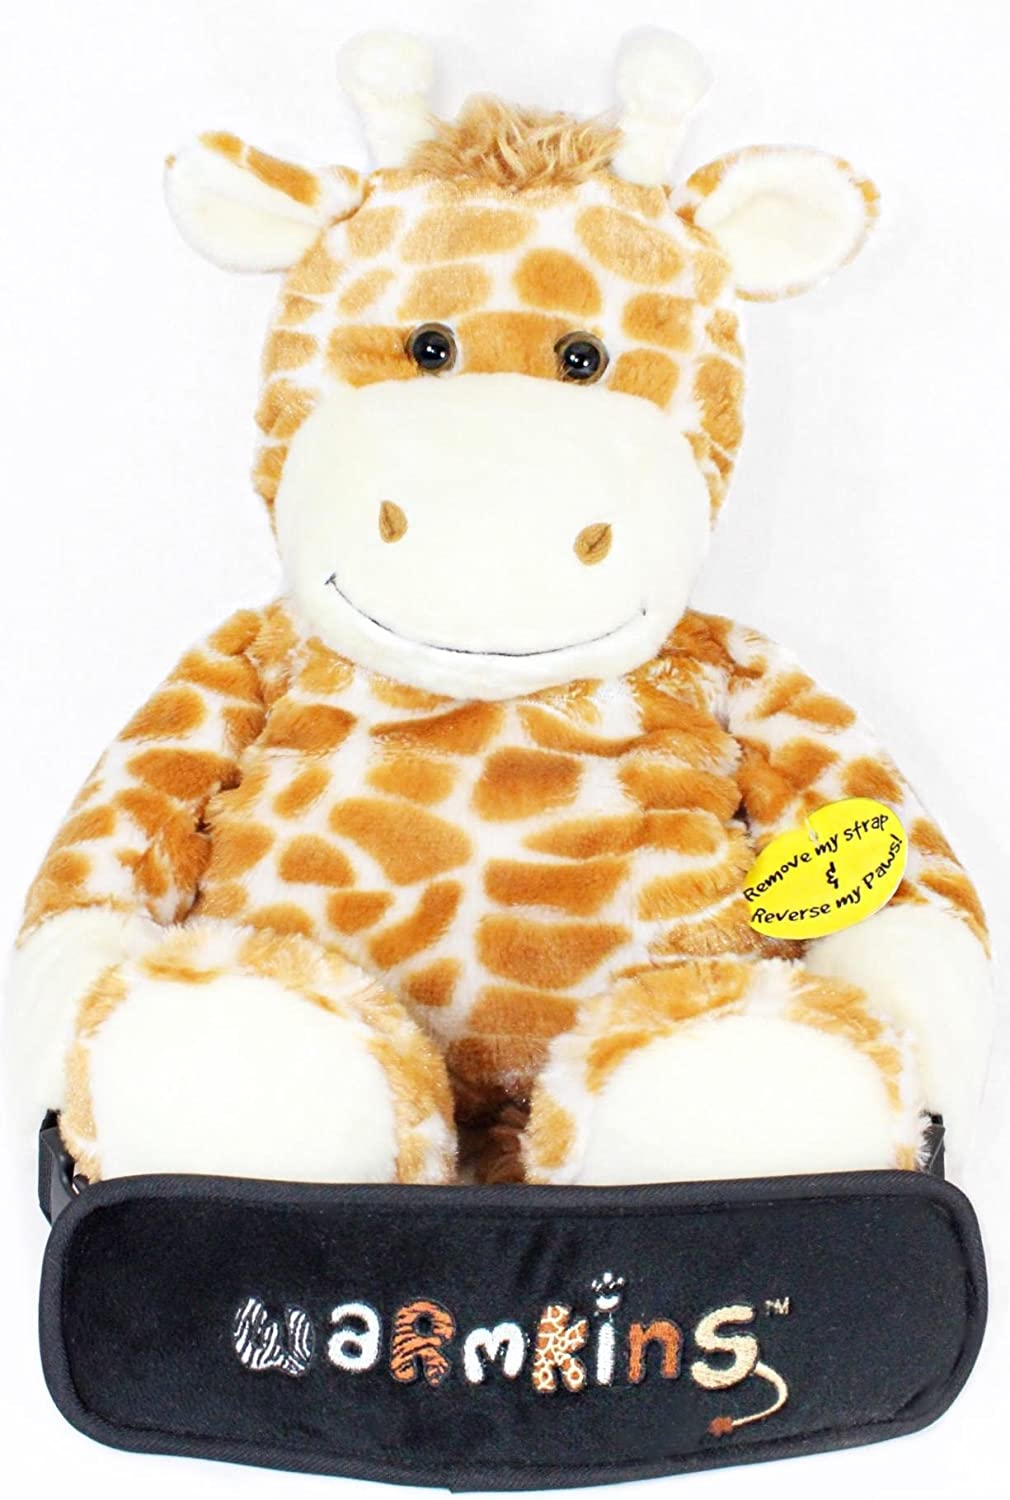 "Winston Warmkins Original 18"" Weighted Sensory Plush Giraffe Feels Like a Warm-Hug,Therapeutic,Calming,Comforting.Hot/Cold,Microwavable,Doubles as Backpack and Storage,Removable Straps,Reversible Paws"